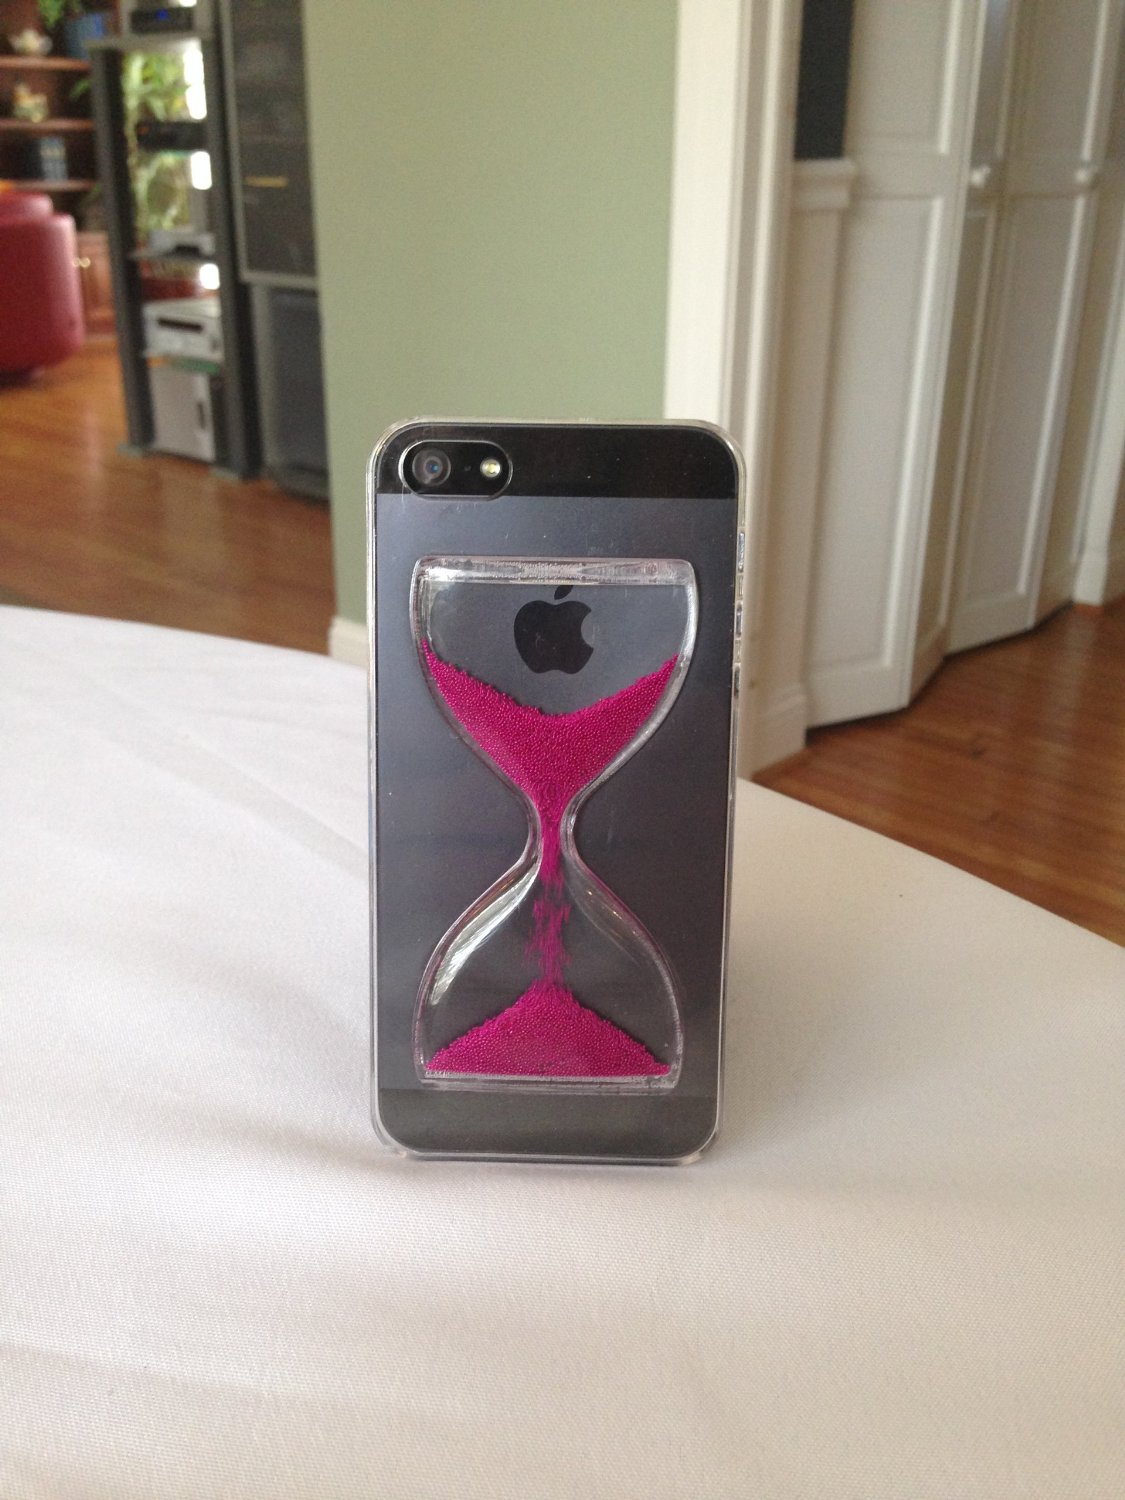 Amazon.com: Hourglass Sandglass iPhone 5 and 5s case (Pink): Cell Phones & Accessories